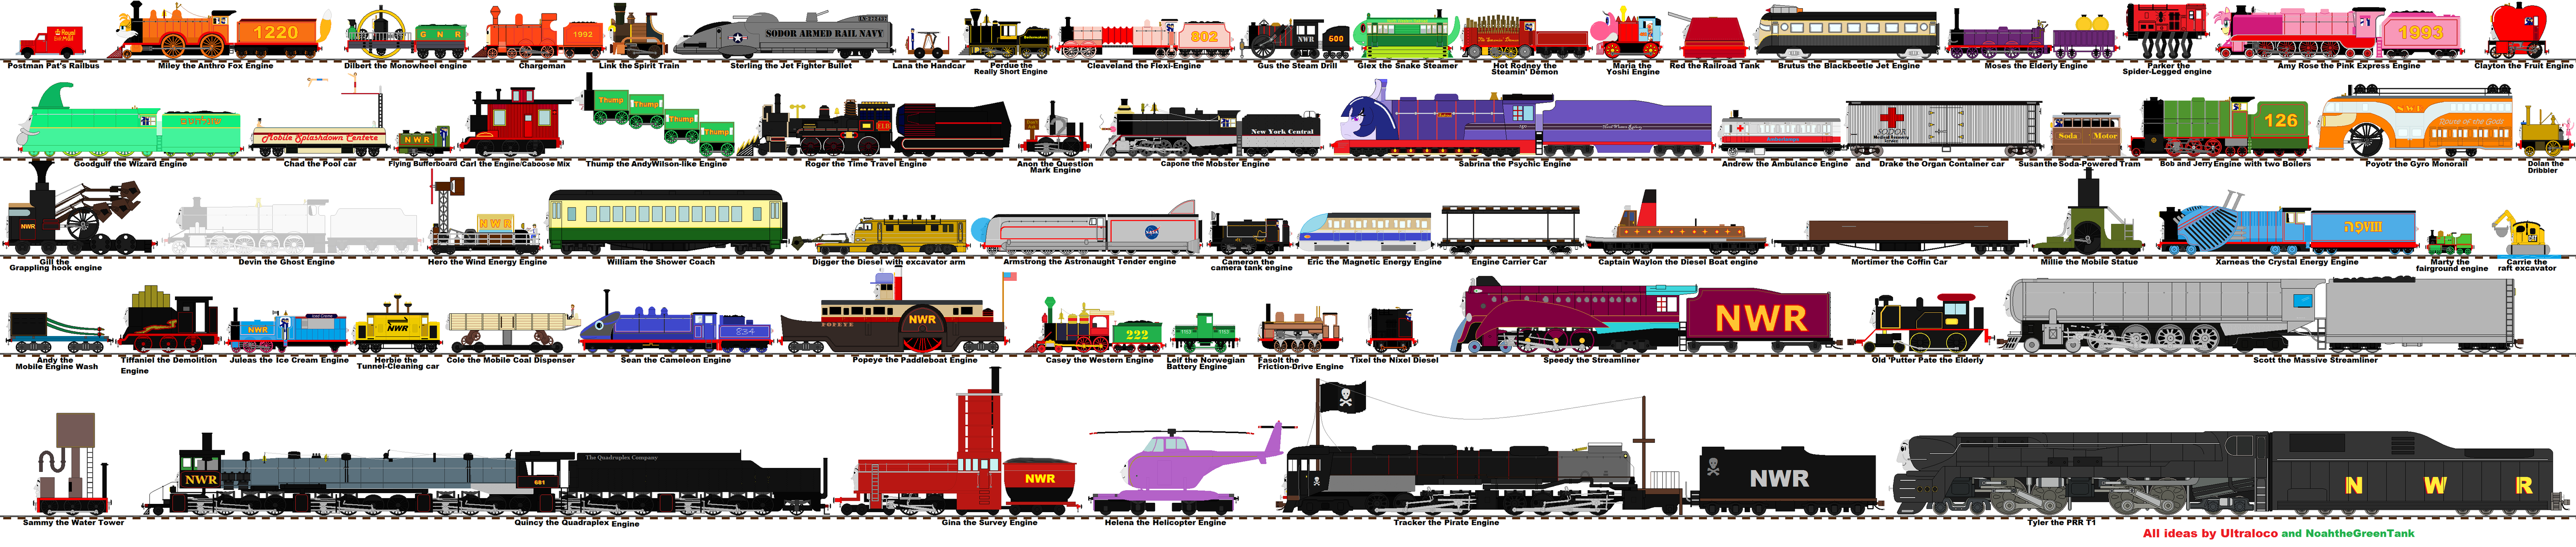 Rejected Thomas And Friends 5 By Ultraloco On Deviantart